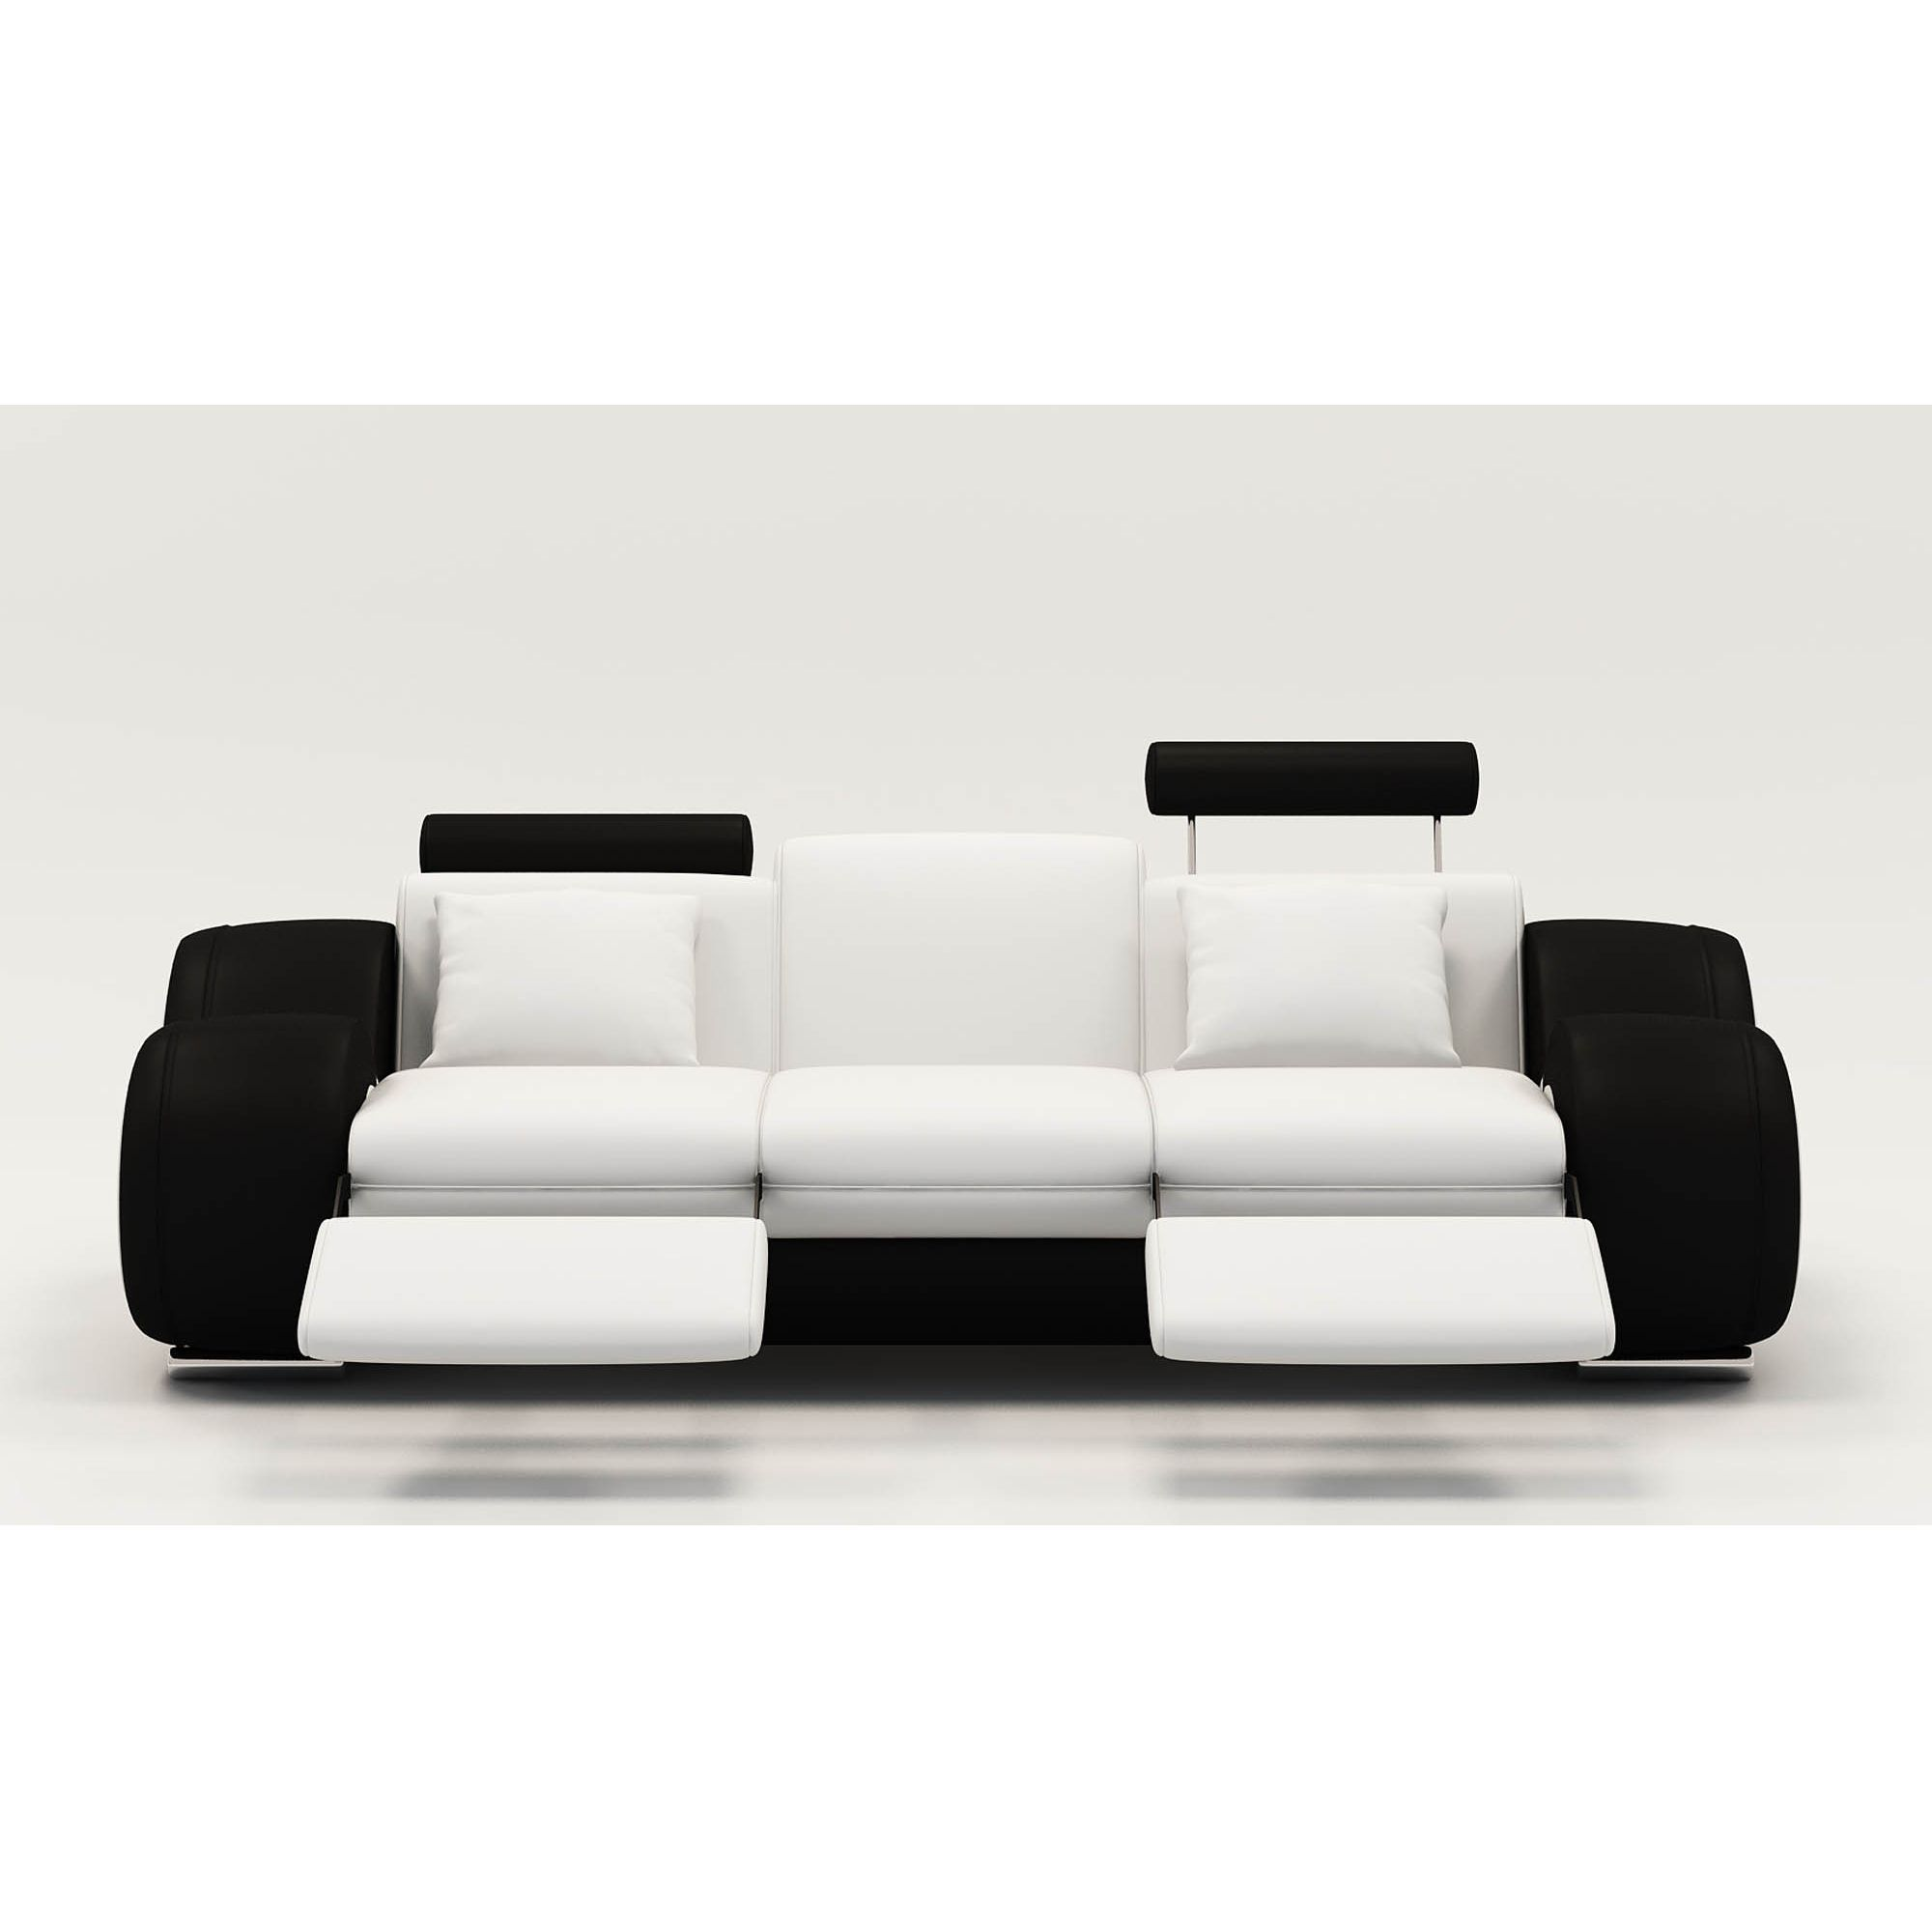 Deco in paris canape design 3 places cuir blanc et noir appuies tetes relax - Canape cuir relax 3 places ...